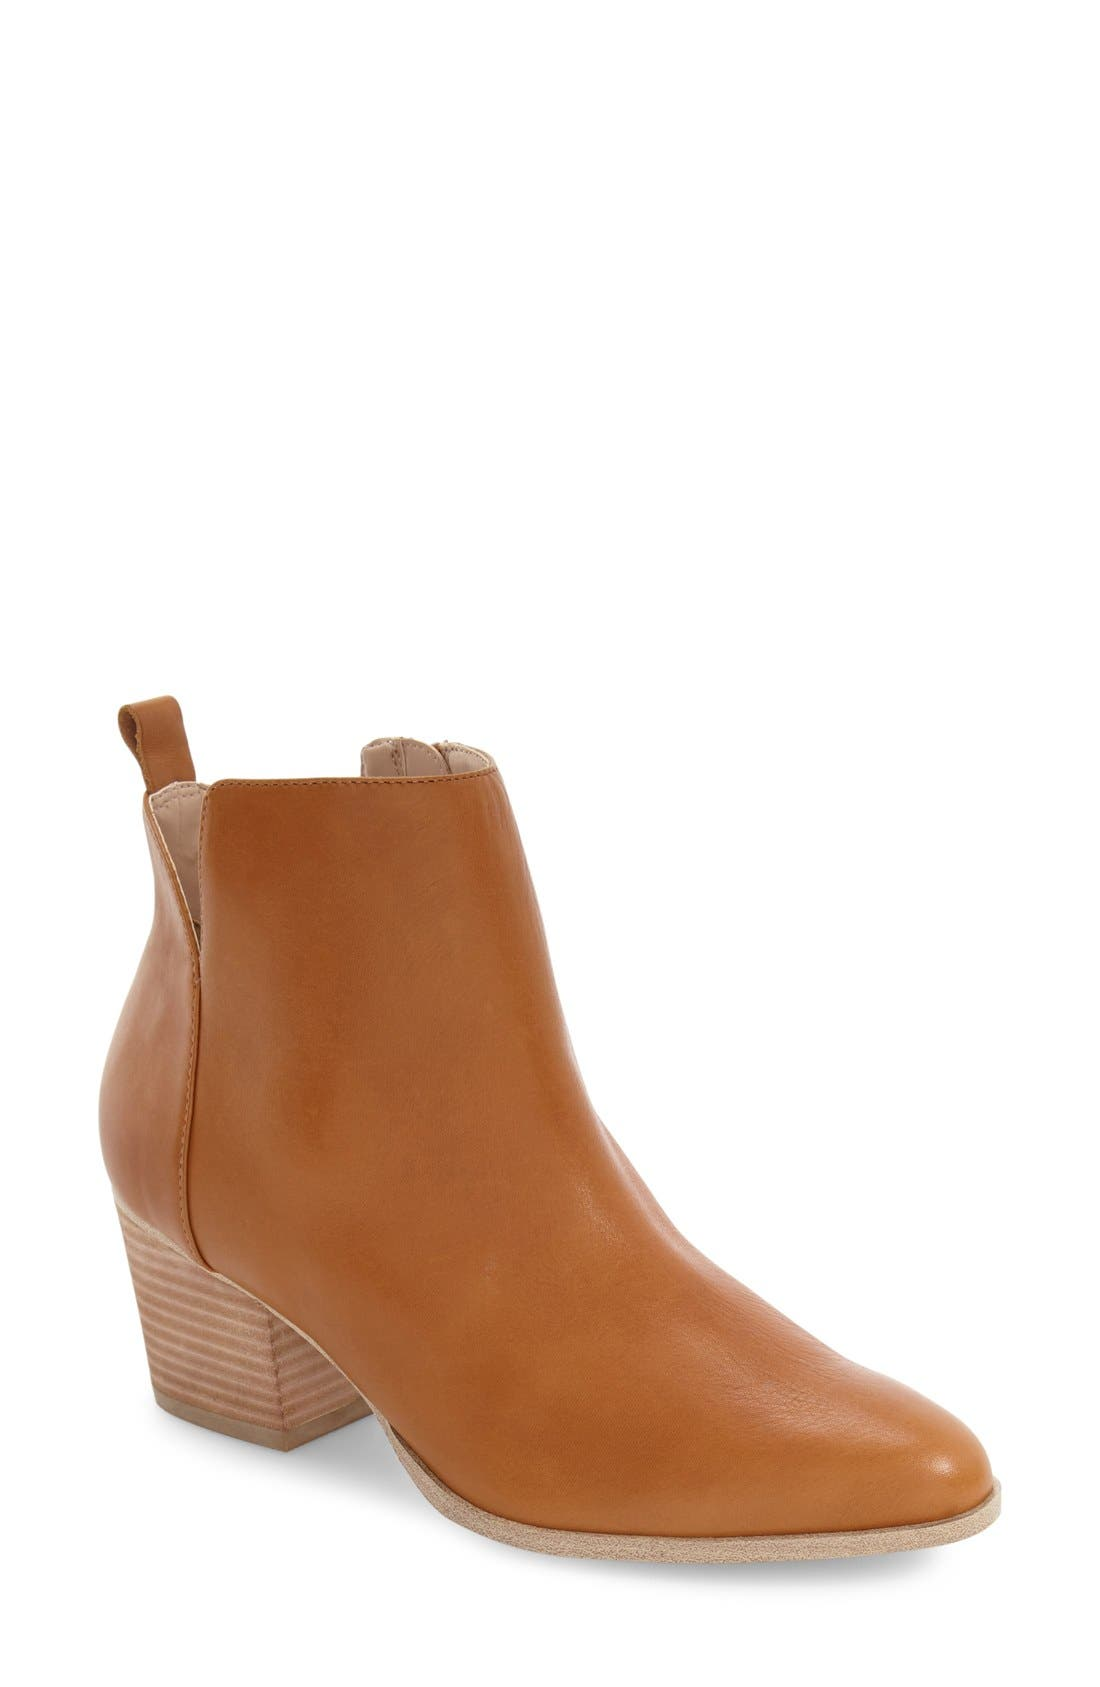 Main Image - Sole Society Bowie Bootie (Women)